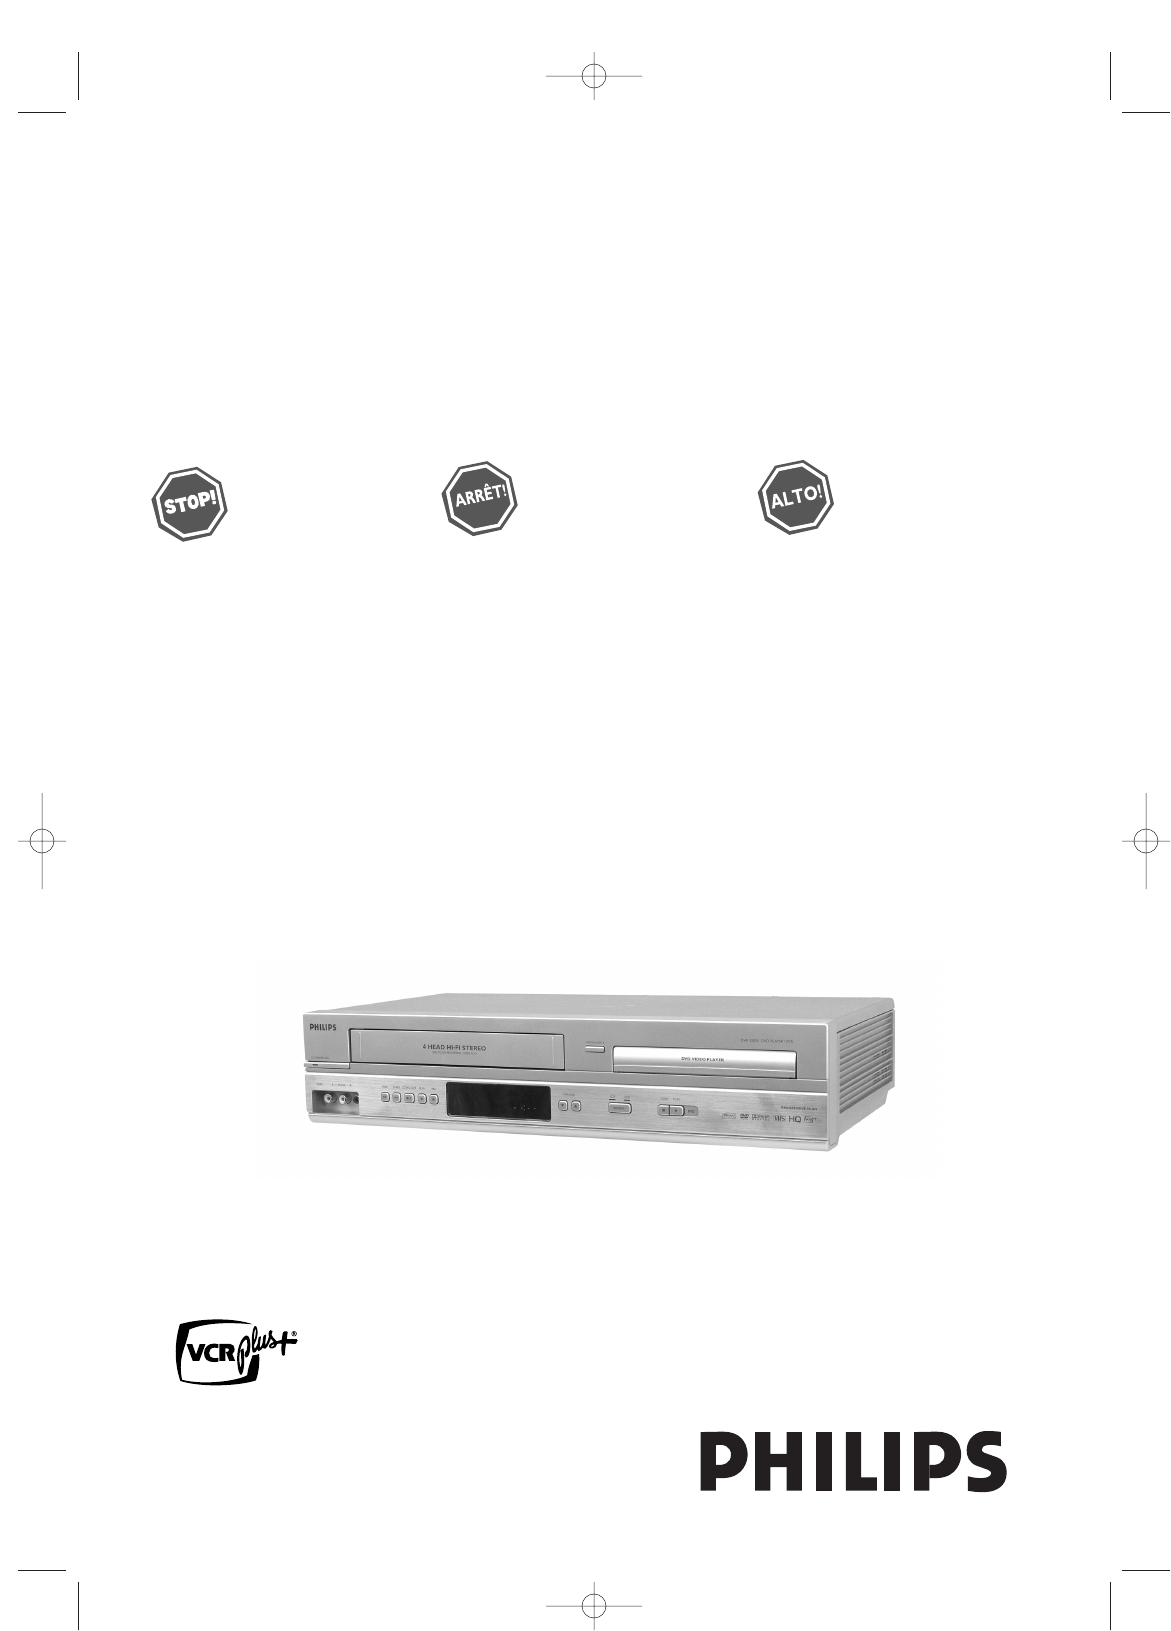 Philips DVD VCR Combo DVP3200V/37 User Guide